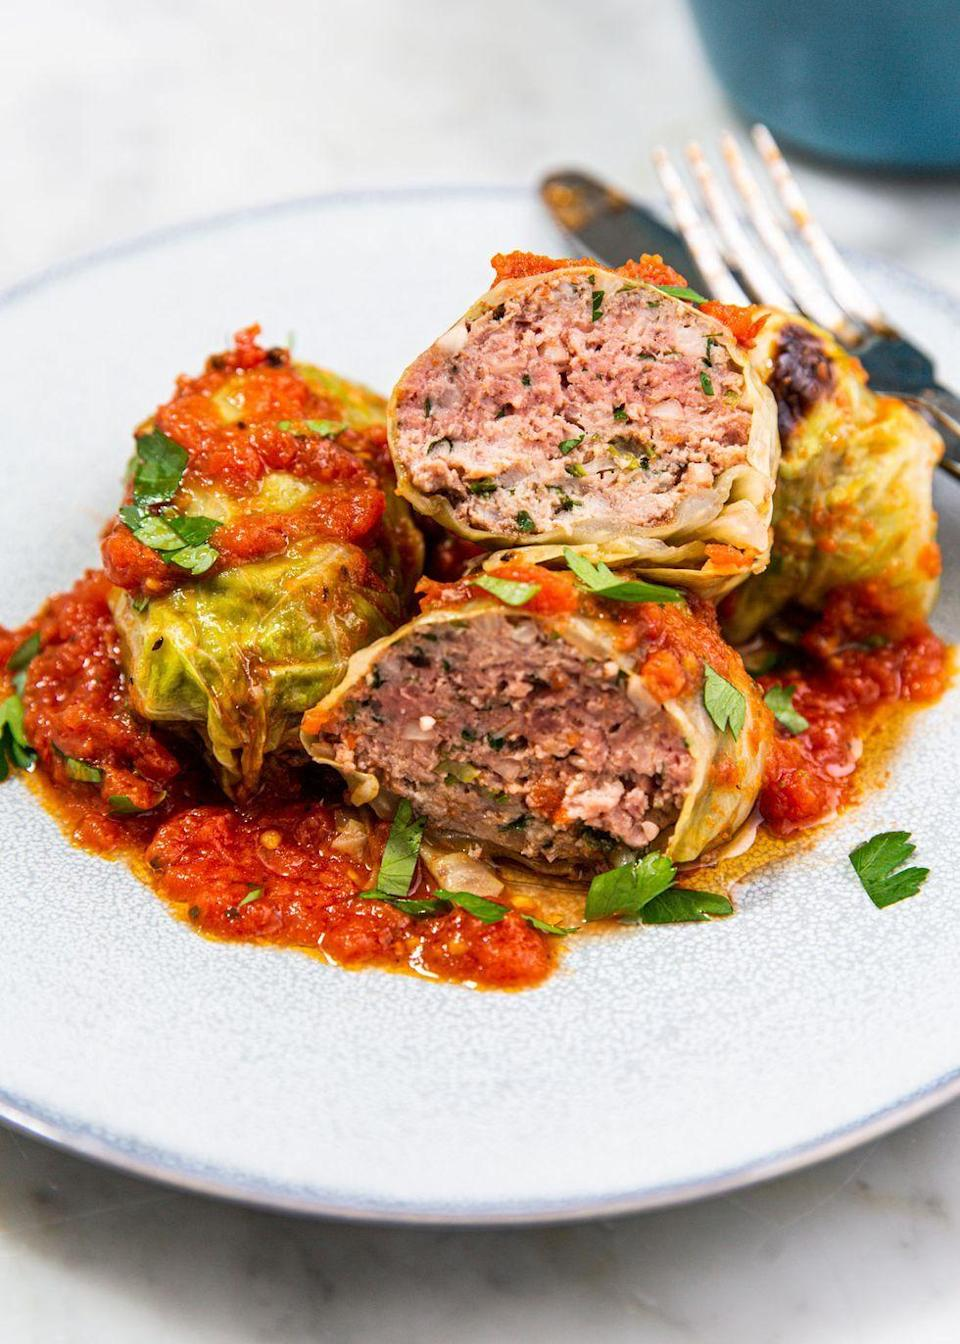 """<p>Though this stuffed cabbage is low in carbs, it's definitely high in flavor.</p><p><em><a href=""""https://www.delish.com/cooking/recipe-ideas/a30779229/keto-stuffed-cabbage-recipe/"""" rel=""""nofollow noopener"""" target=""""_blank"""" data-ylk=""""slk:Get the recipe from Delish »"""" class=""""link rapid-noclick-resp"""">Get the recipe from Delish »</a></em></p>"""